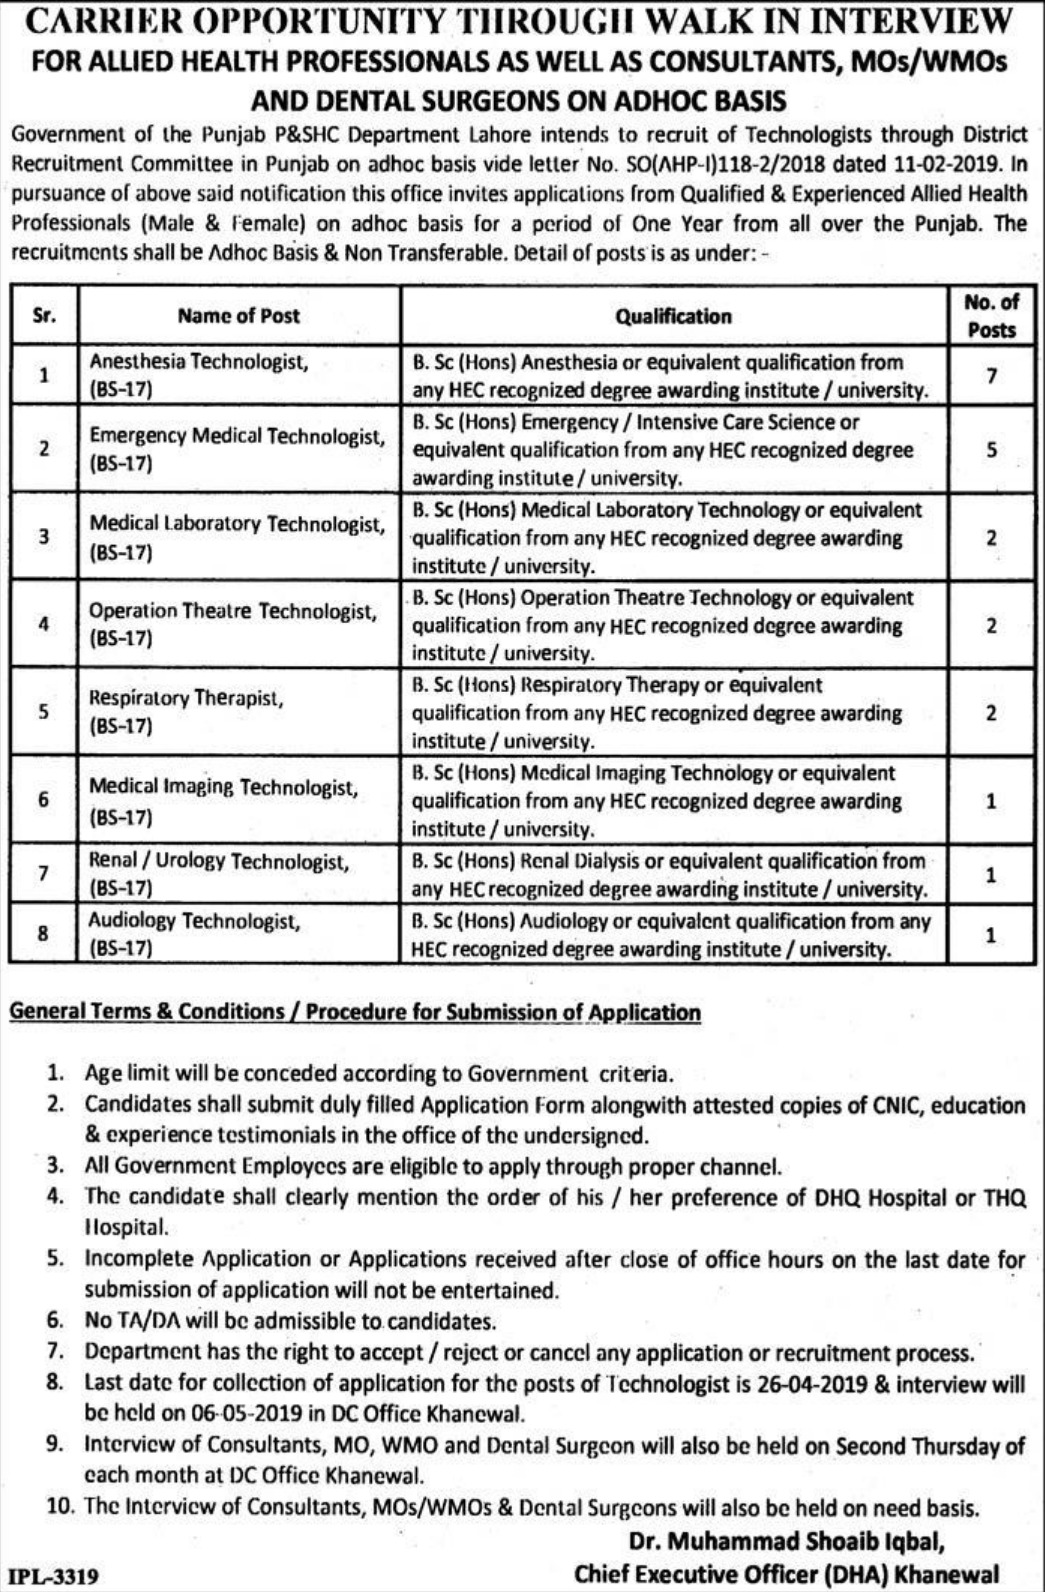 District Health Authority Khanewal Jobs 2019 P&SHC Department Punjab Lahore